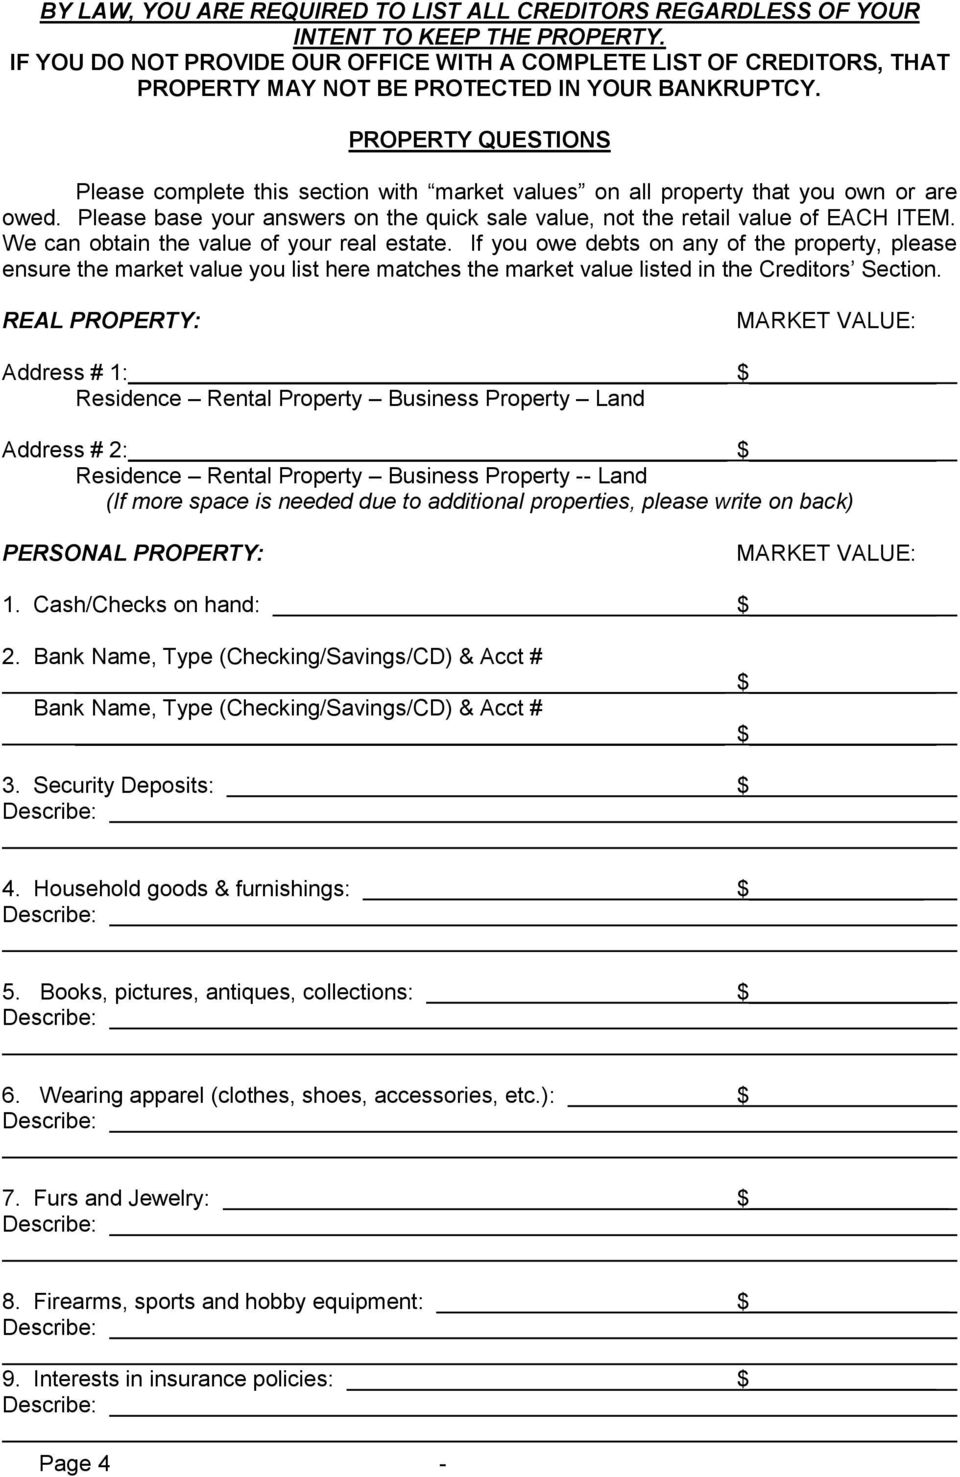 PROPERTY QUESTIONS Please complete this section with market values on all property that you own or are owed. Please base your answers on the quick sale value, not the retail value of EACH ITEM.